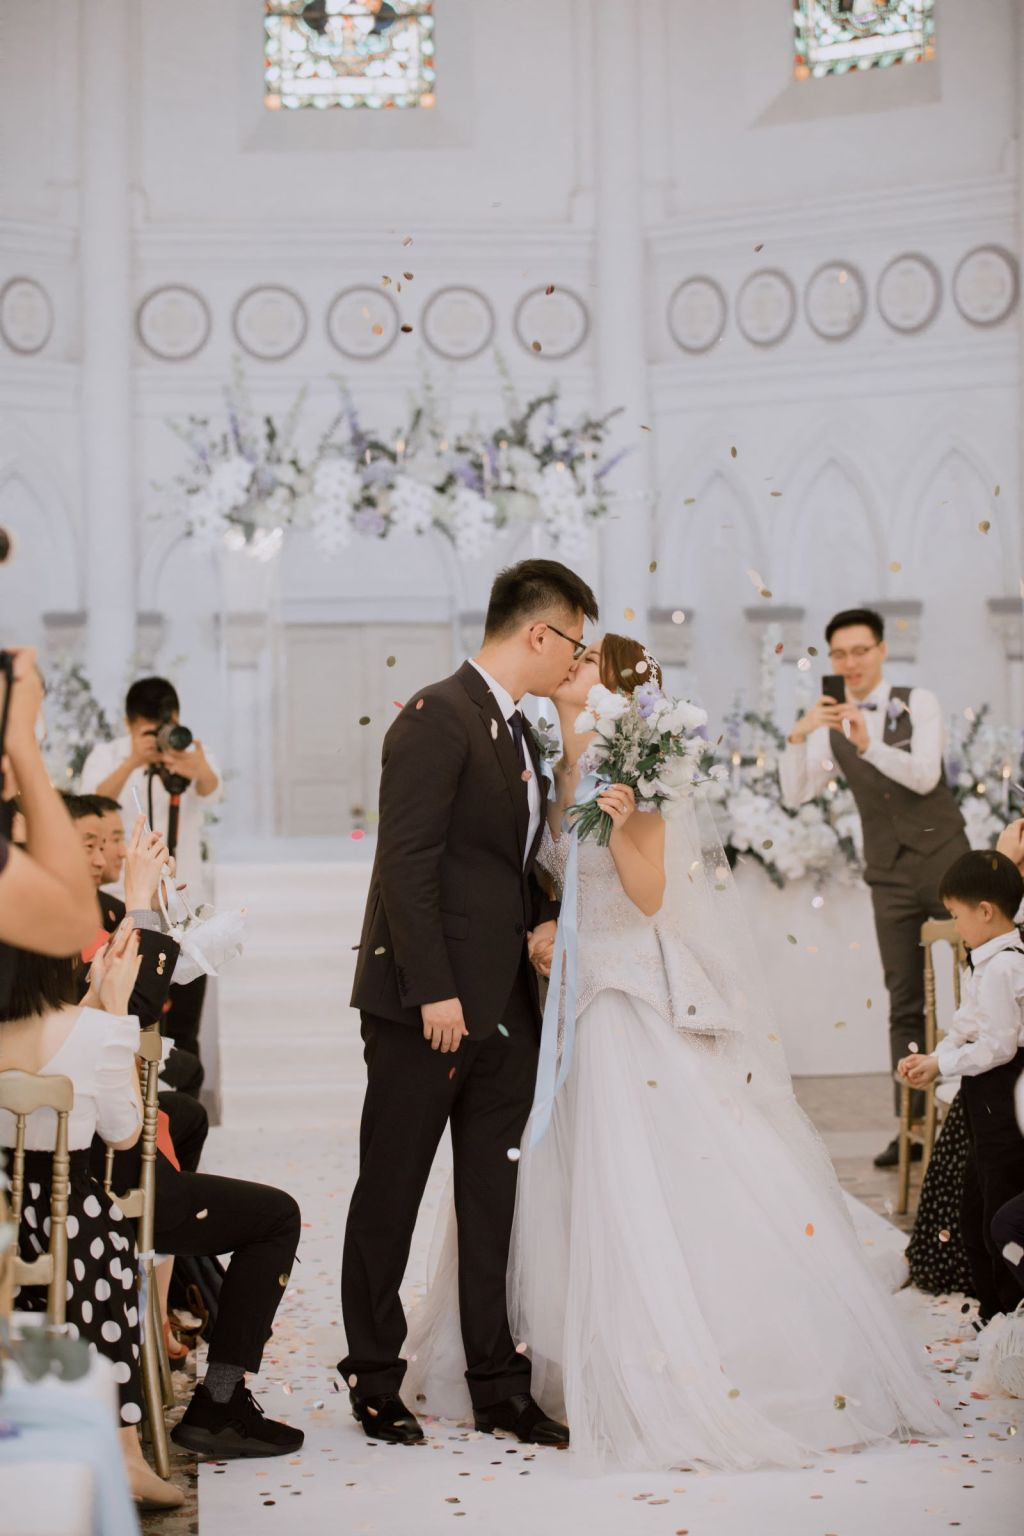 Bride and groom sharing a first kiss with a personal bridal bouquet in the bride's hand